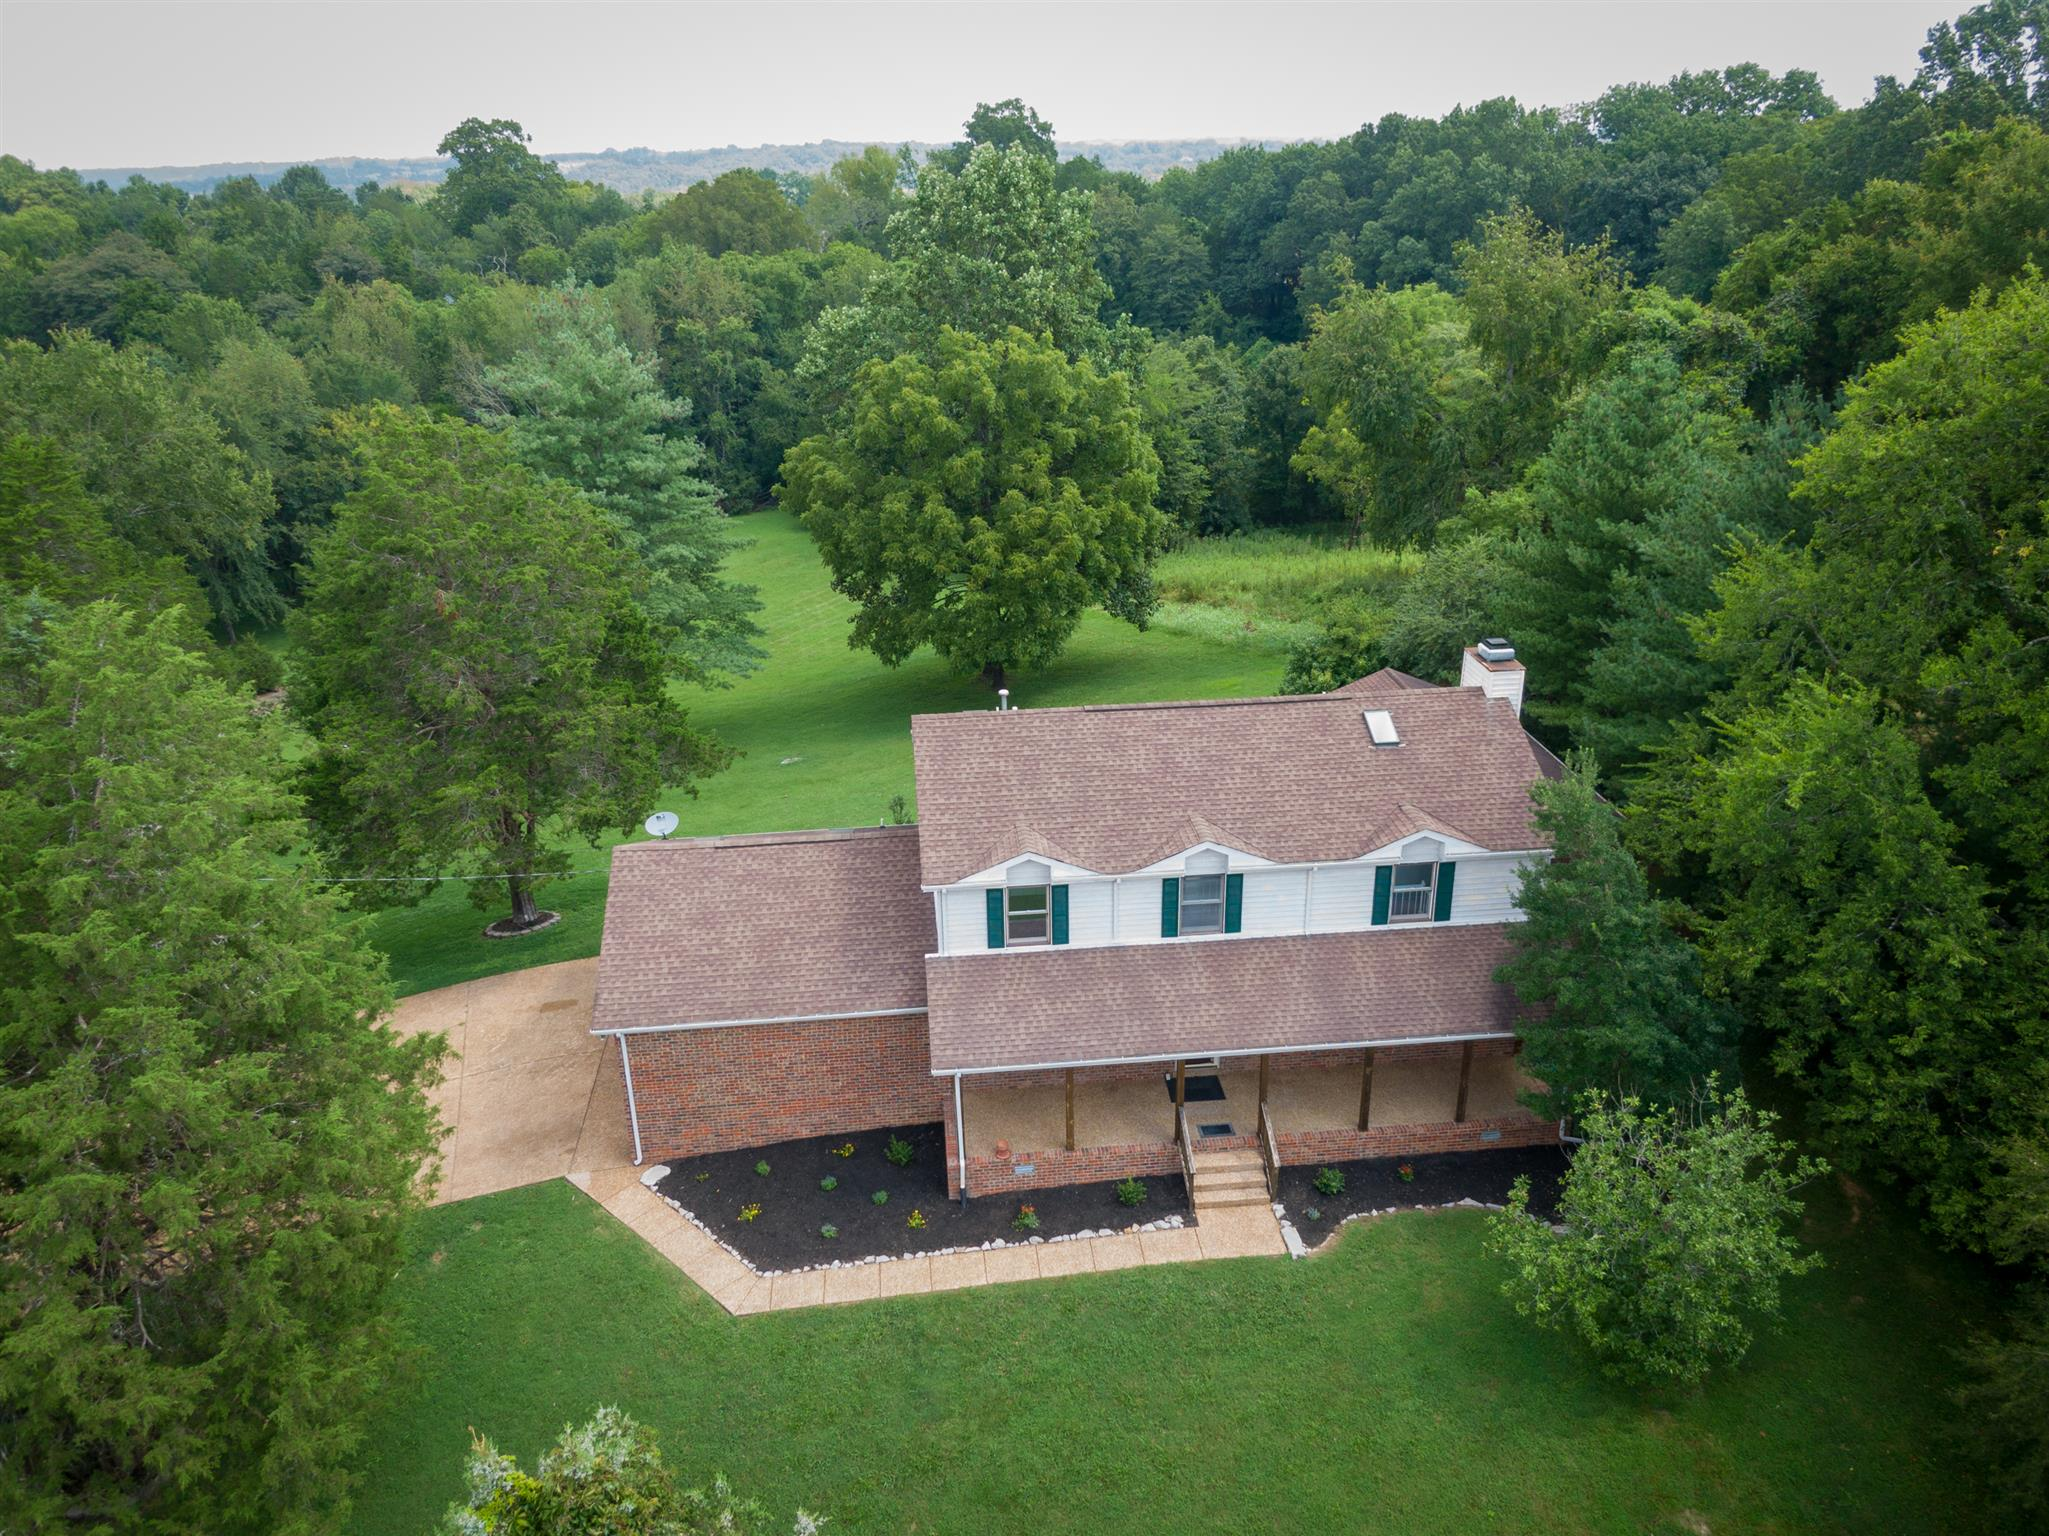 14144 Old Hickory Blvd, one of homes for sale in Nashville-Antioch